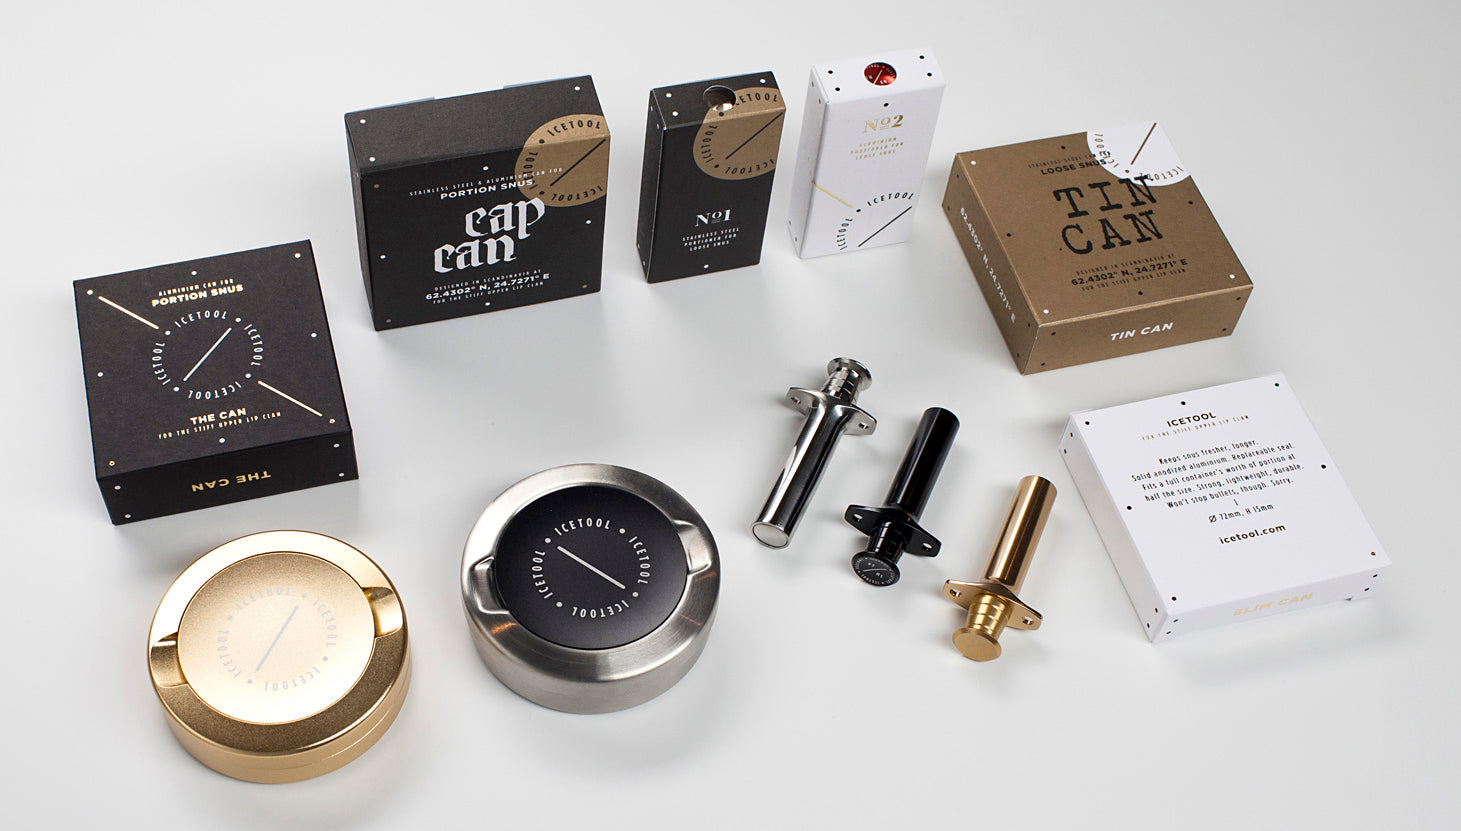 Icetool snus accessories